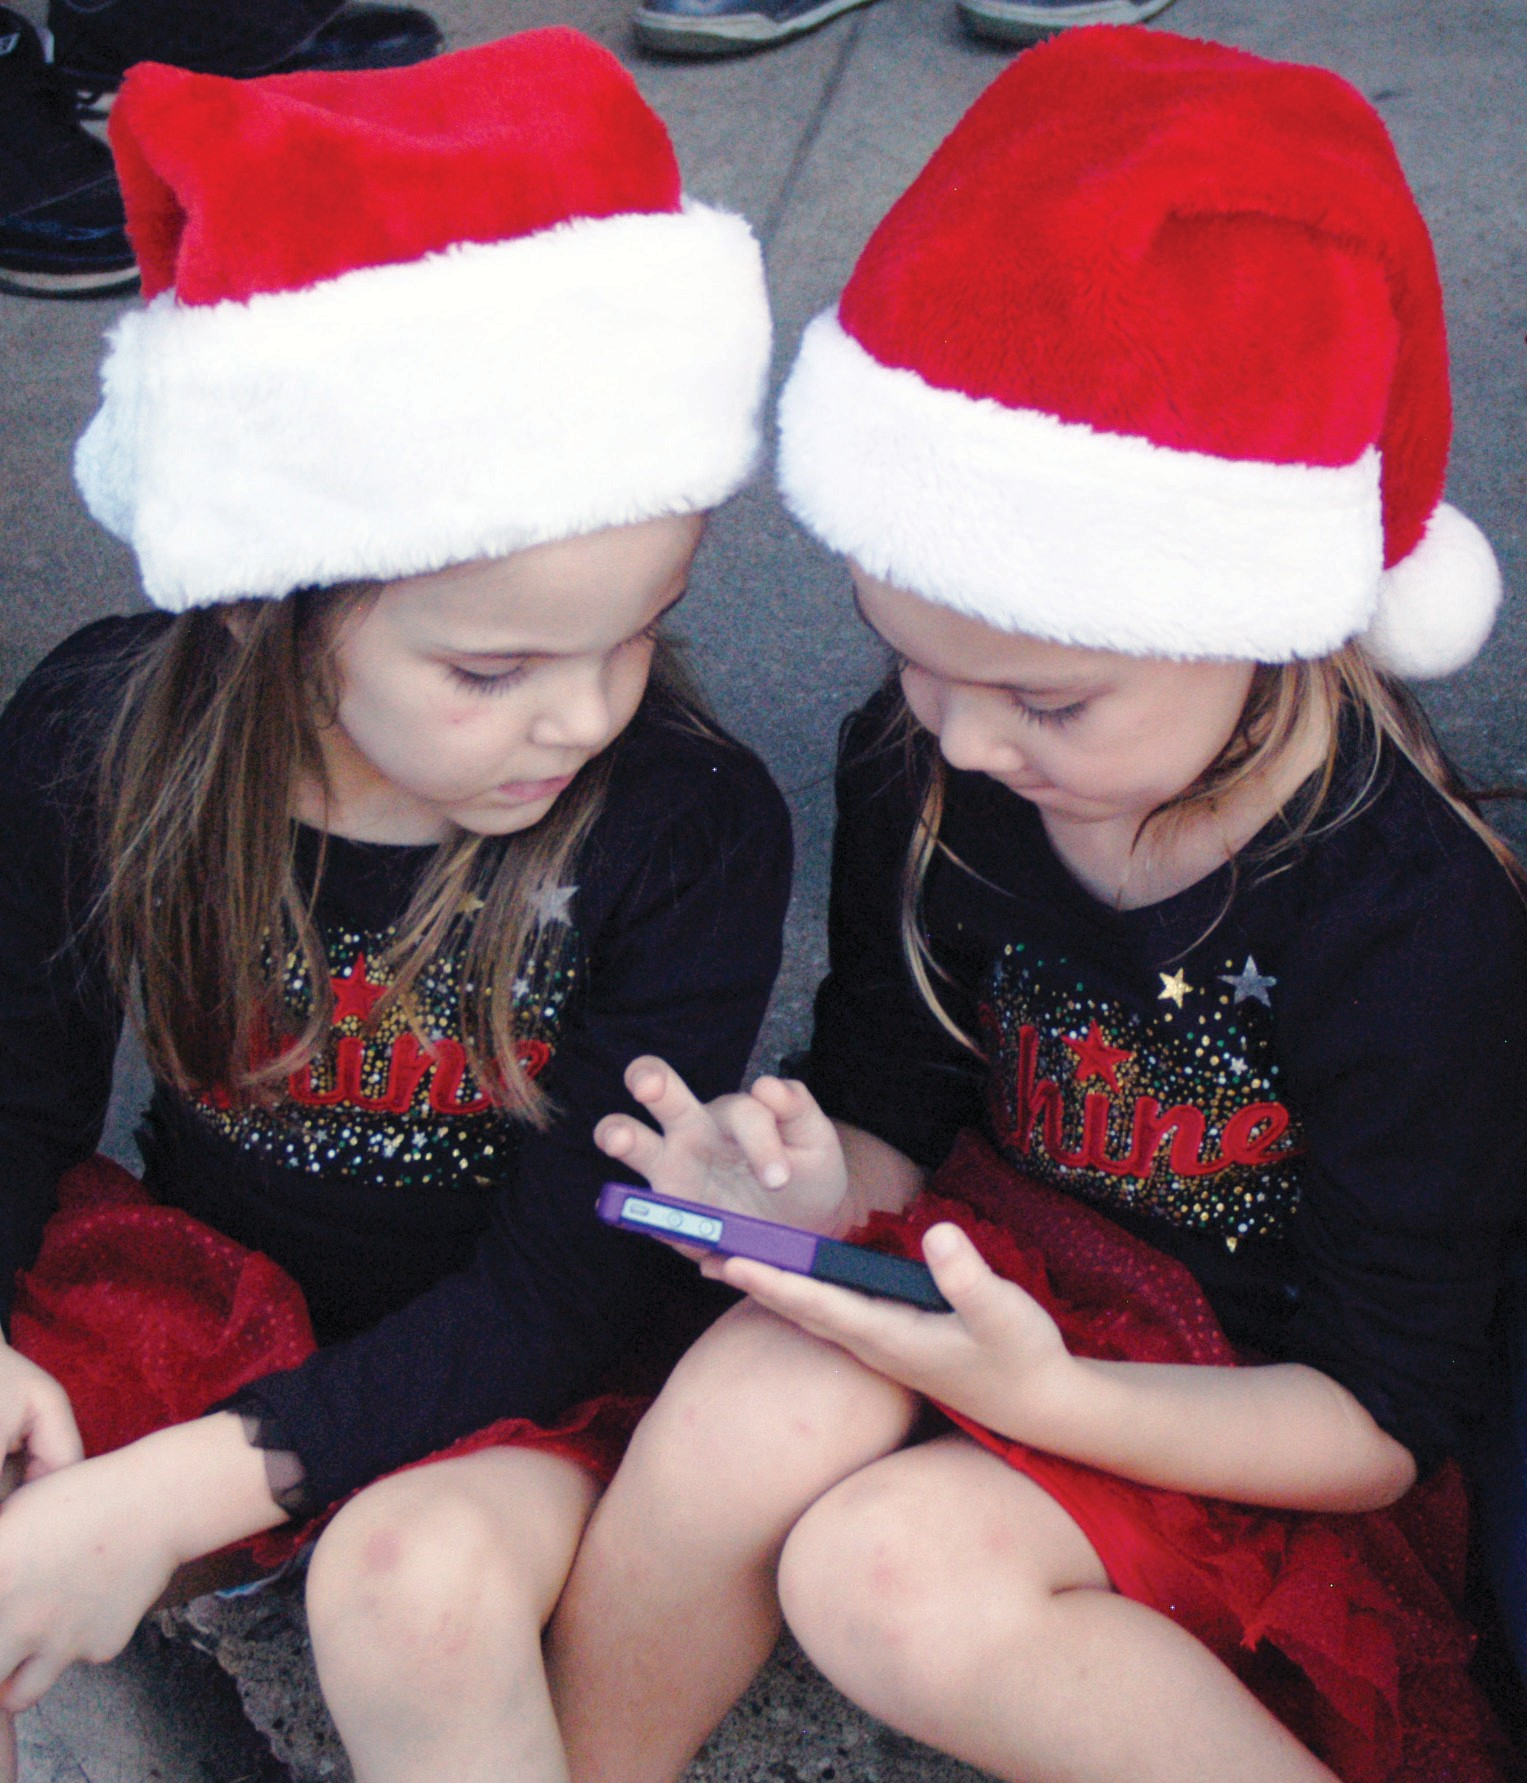 Kid Nation Dancers Kiera Wiatrek and Savanna Schuchart look as though they may be texting Santa with their wish list at the Brush Country Christmas event held last Saturday. The girls also performed with other dancemates in downtown Pleasanton.